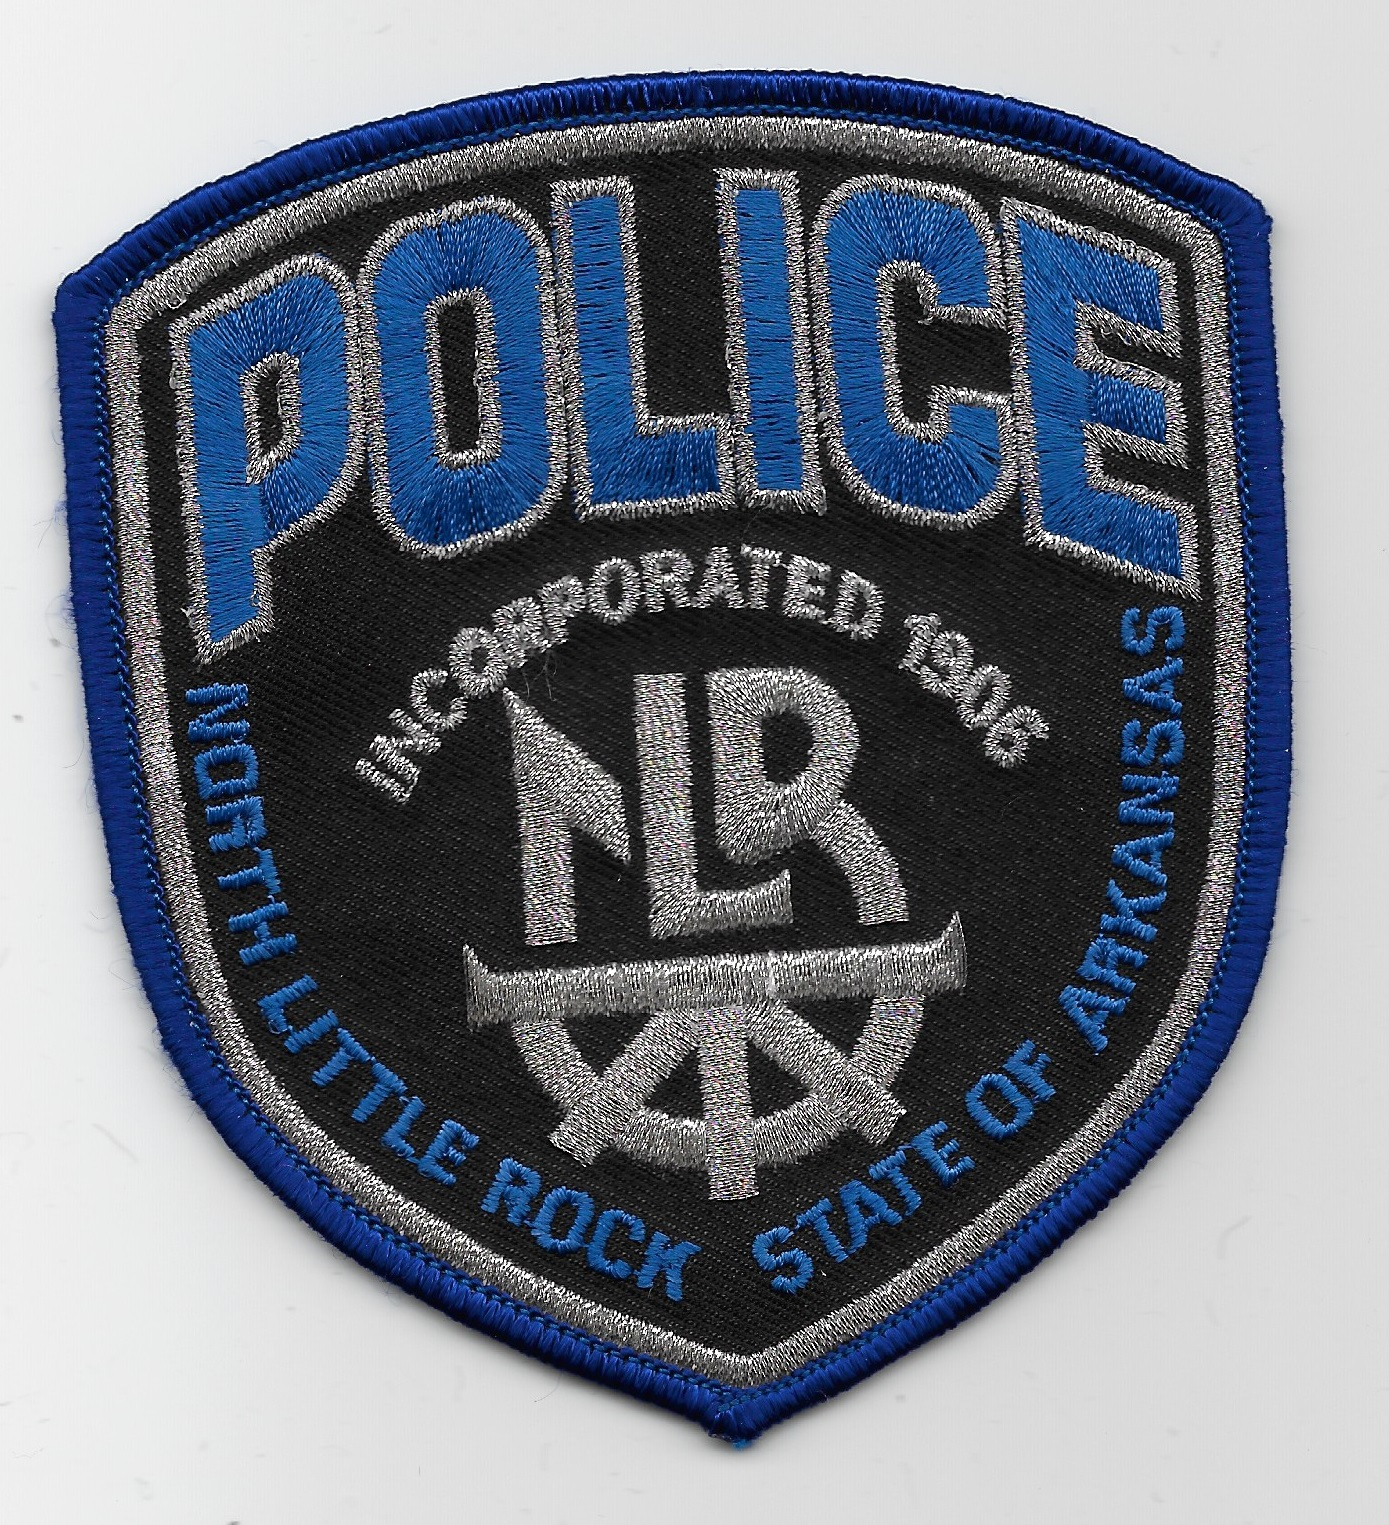 North Little Rock Police AK black